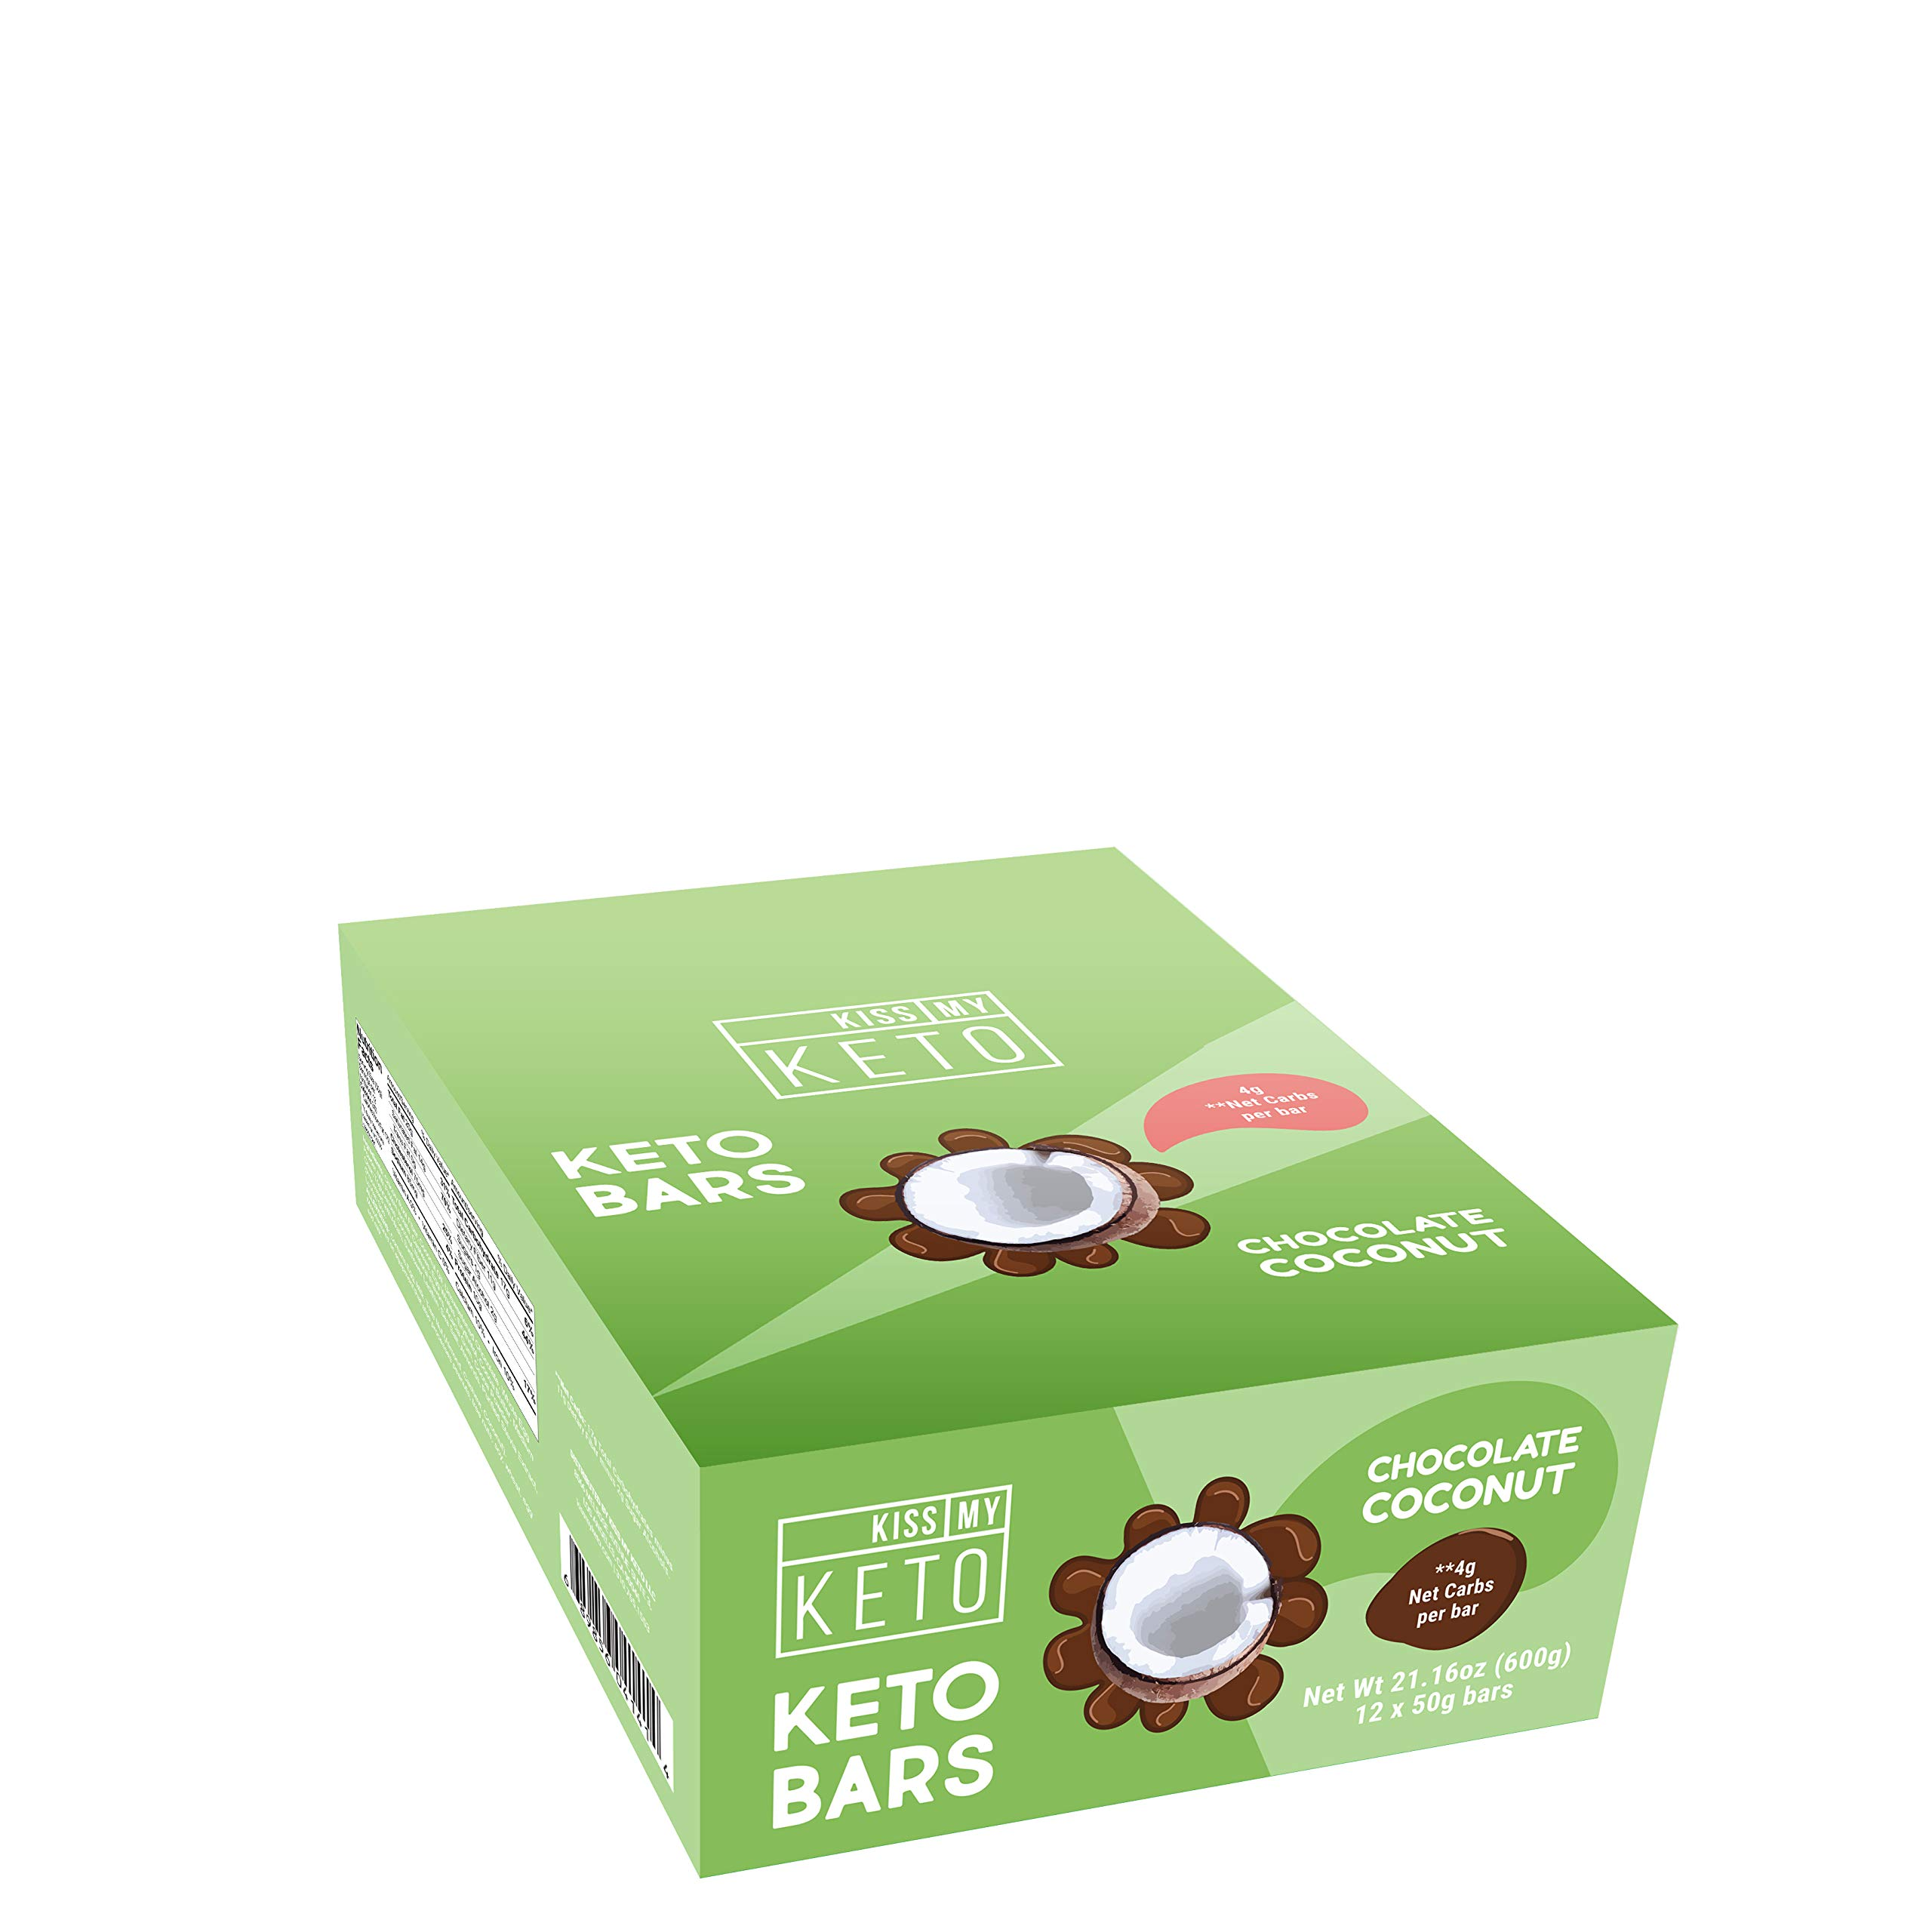 Kiss My Keto Snacks Keto Bars - Keto Chocolate Coconut (3 Pack, 36 Bars), Nutritional Keto Food Bars, Paleo, Low Carb/Glycemic Keto Friendly Foods, All Natural On-The-Go Snacks, 4g Net Carbs by Kiss My Keto (Image #3)